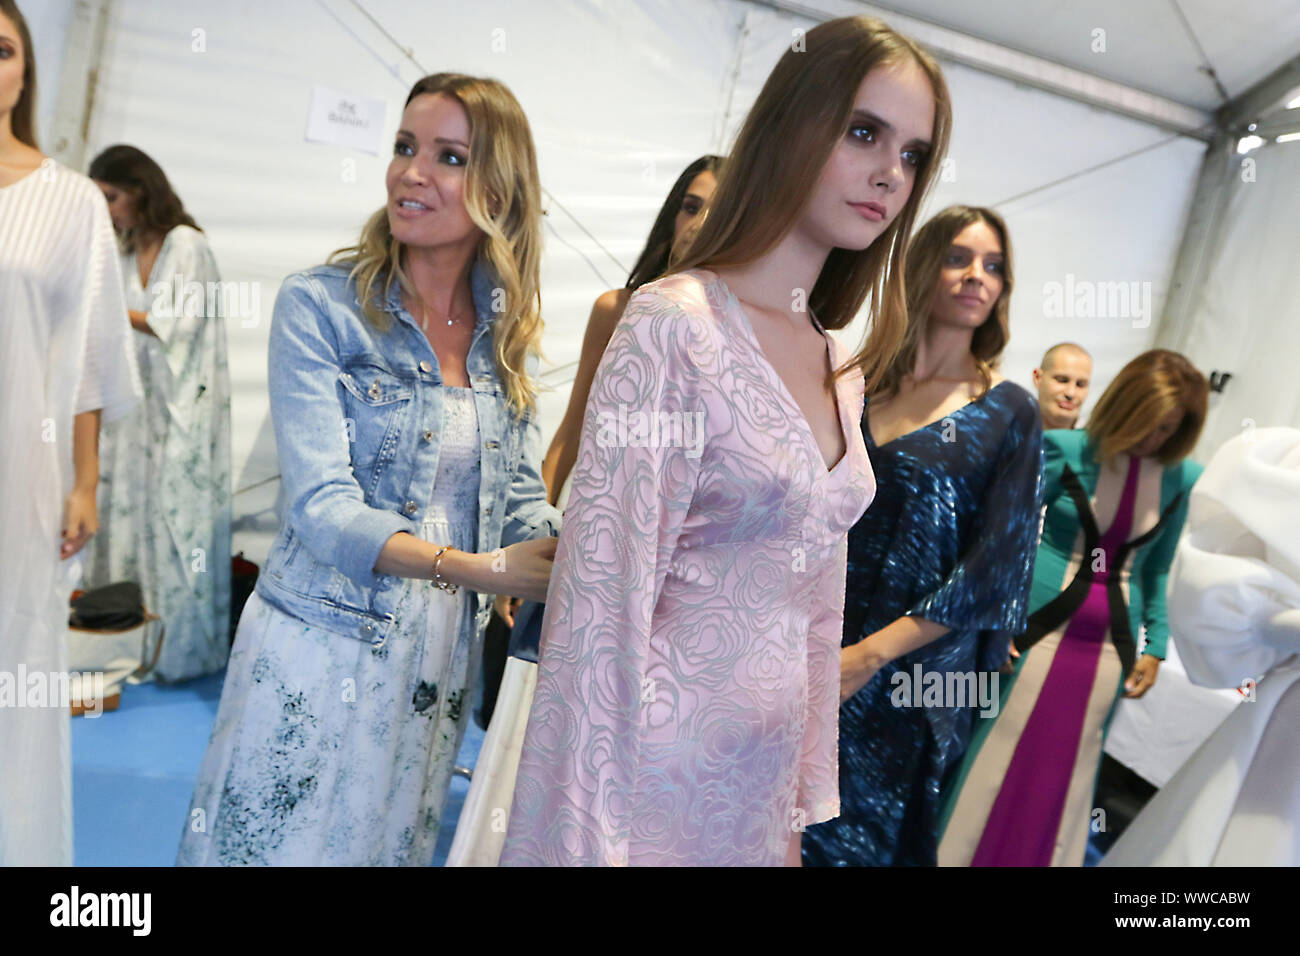 September 13 2019 14 September 2019 Malaga Barbara And Nicole Kimpel Present Their Sophisticated Brand At Larios Fashion Week Malaga Is In Fashion The City Has Once Again Become The National Capital